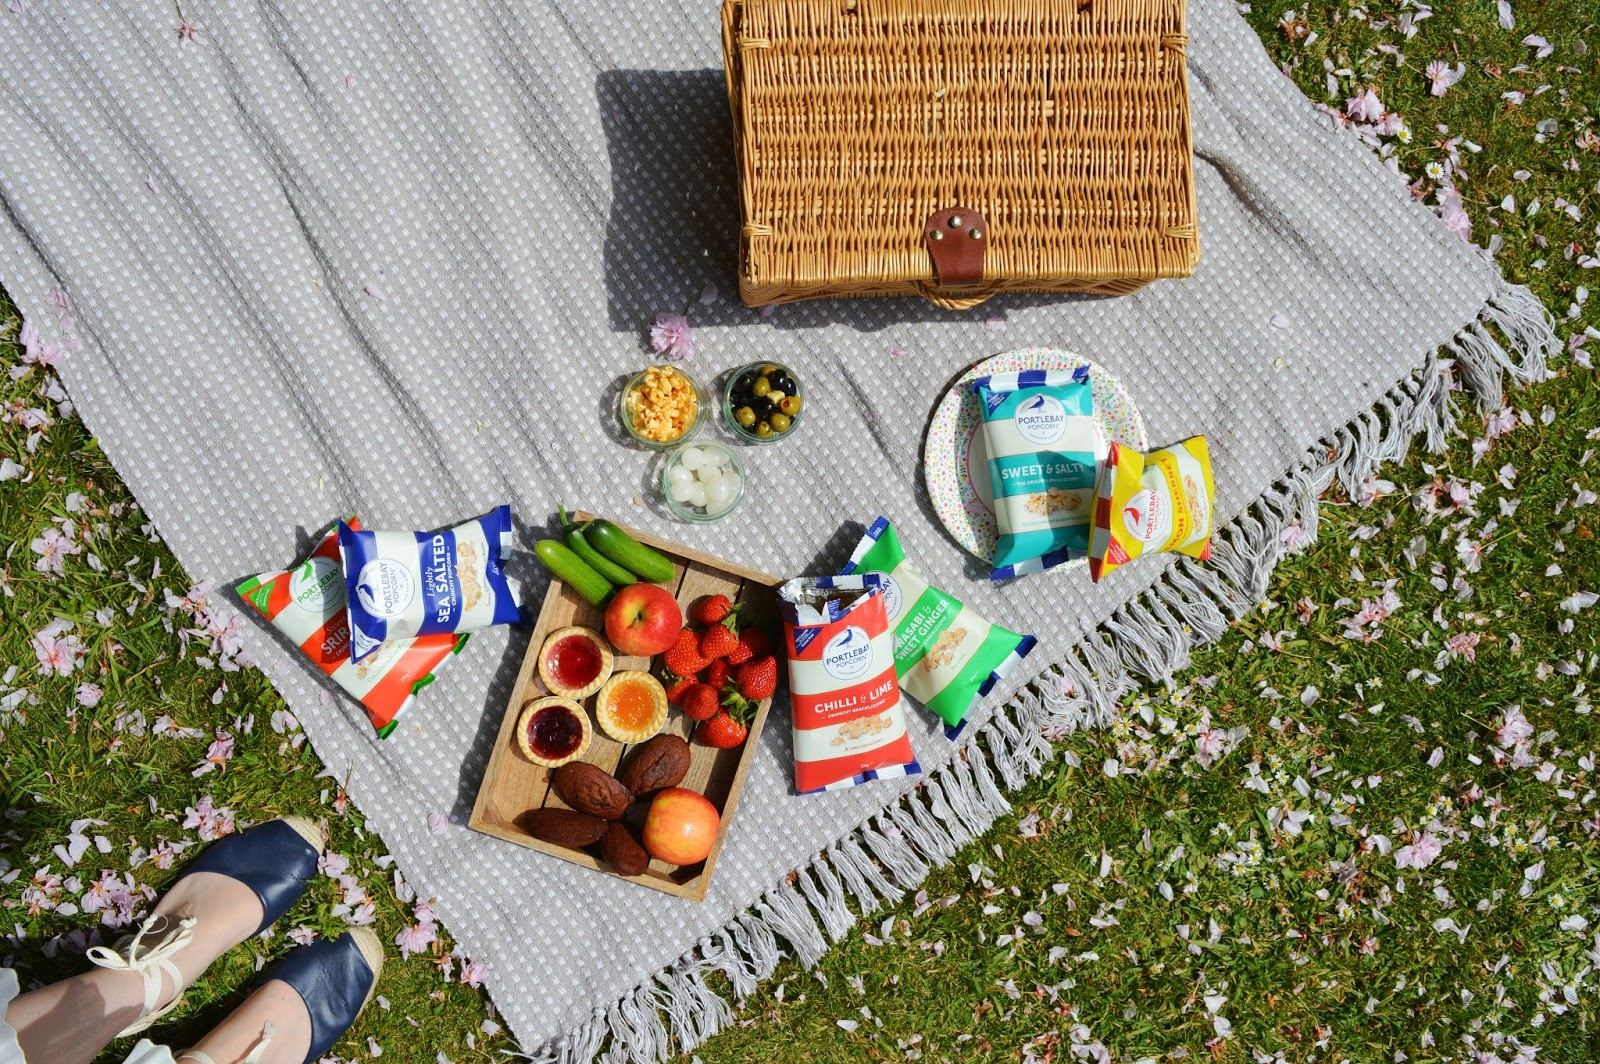 Picnic at Arundel Castle, Portlebay Popcorn review, lifestyle bloggers, Hampshire bloggers